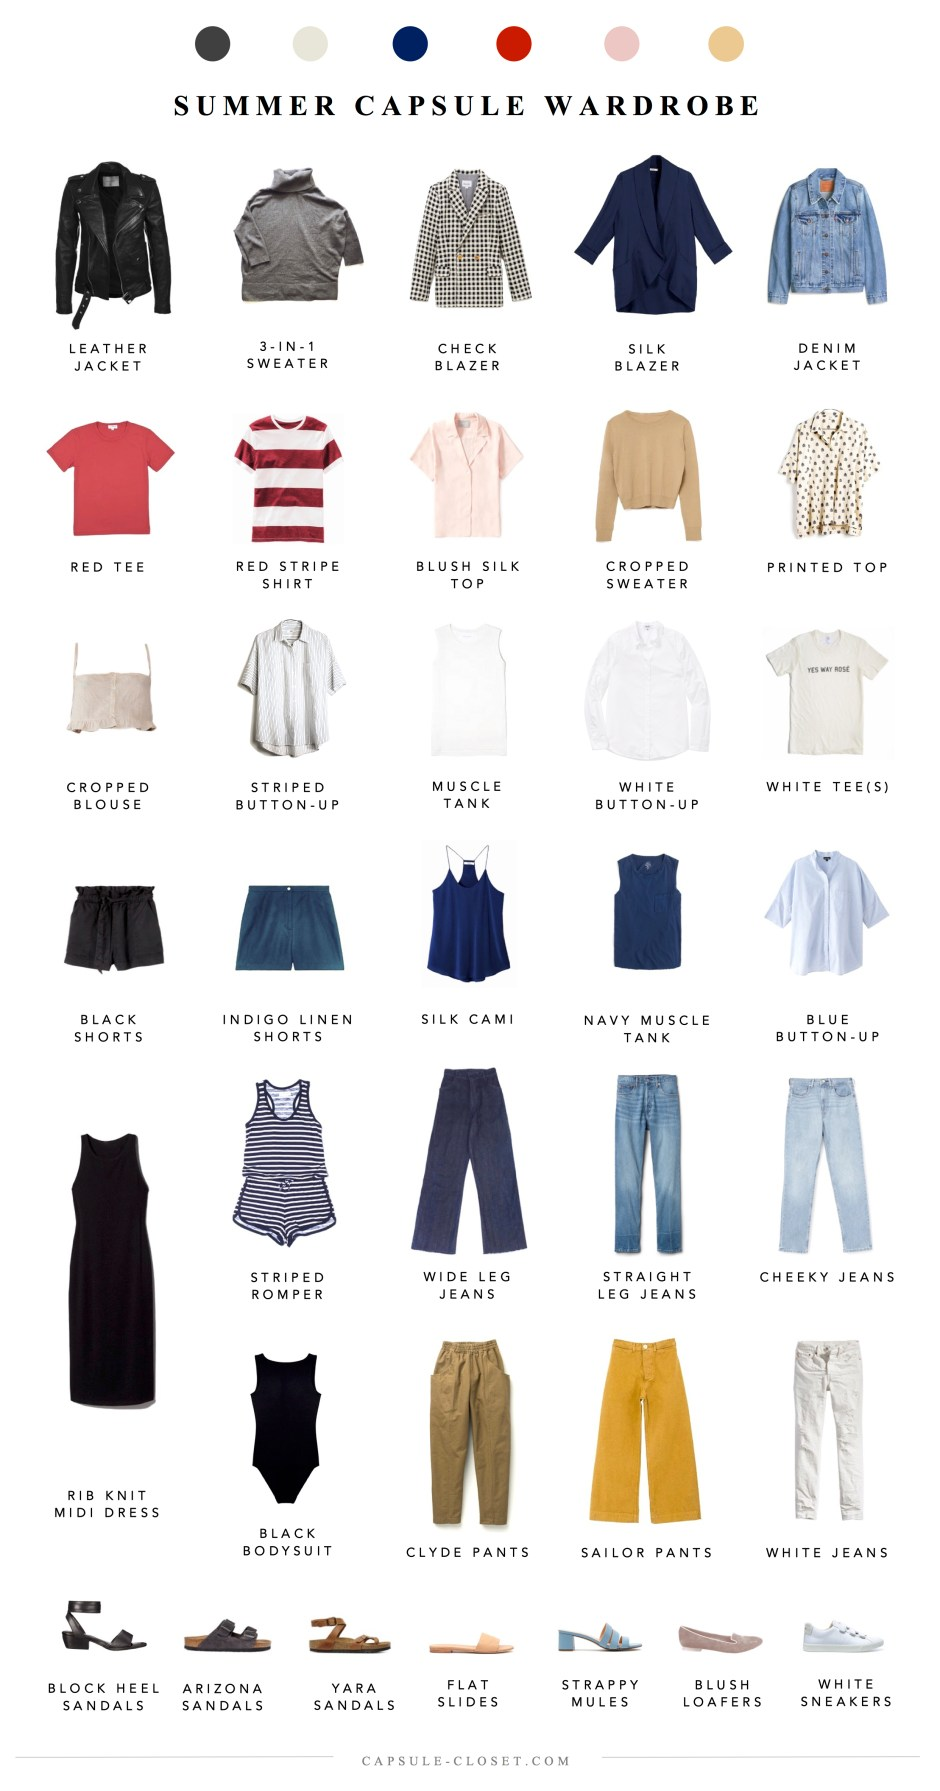 Summer 2018 Capsule Wardrobe, Part I